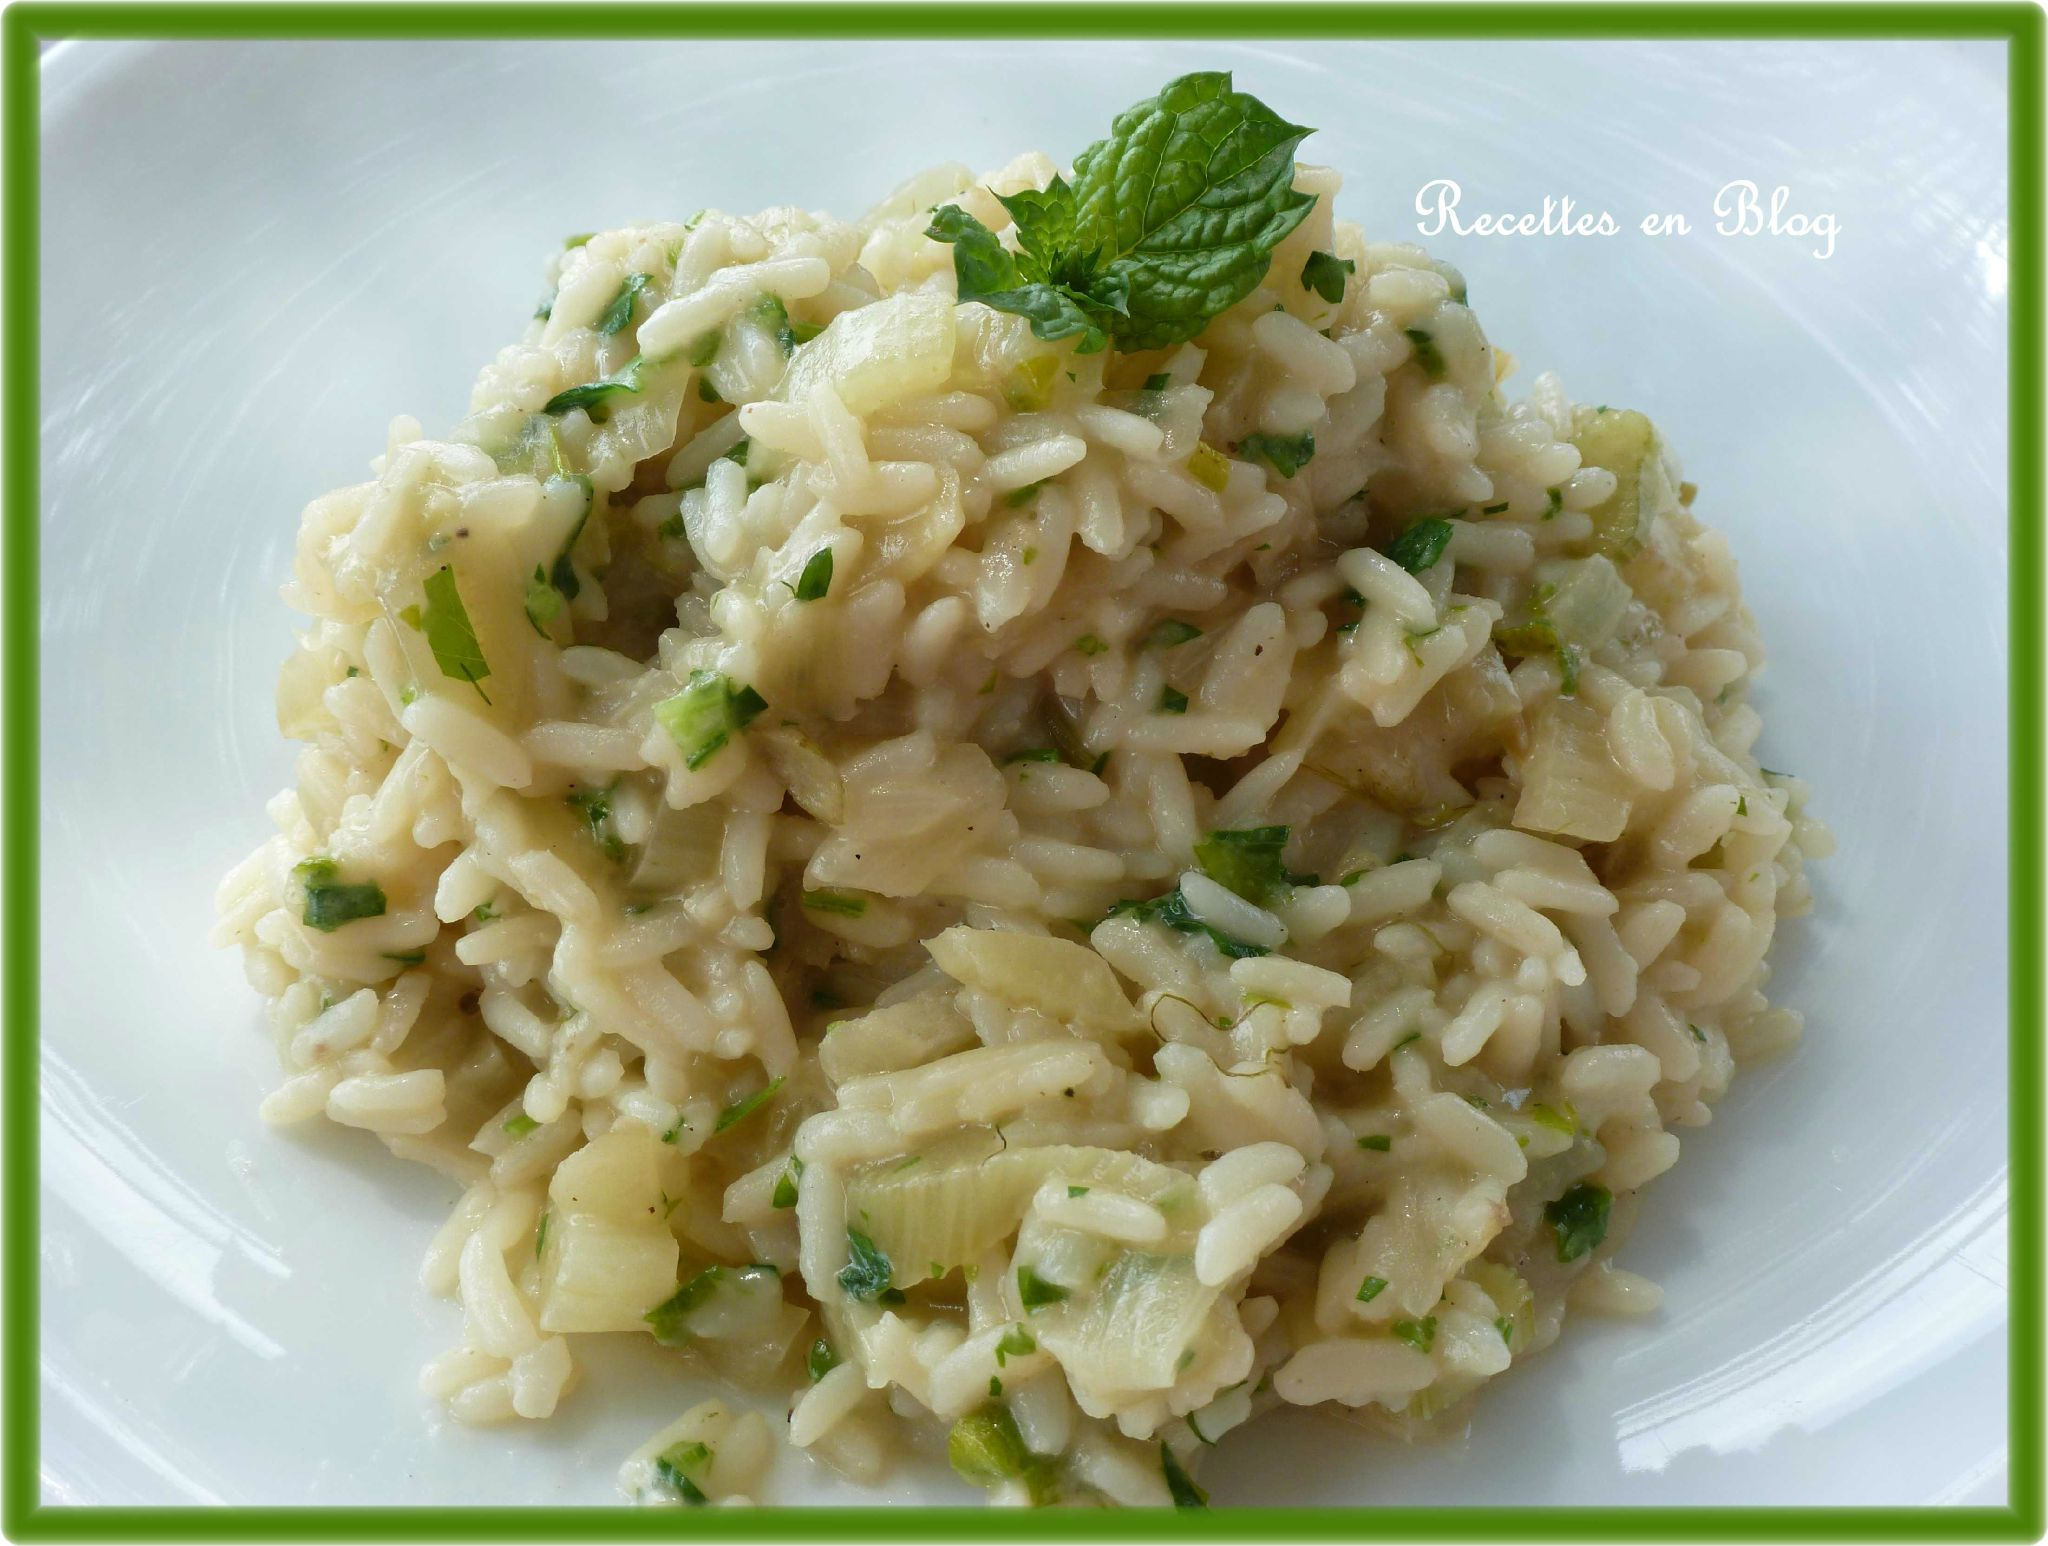 risotto au fenouil et au parmesan recettes en blog. Black Bedroom Furniture Sets. Home Design Ideas